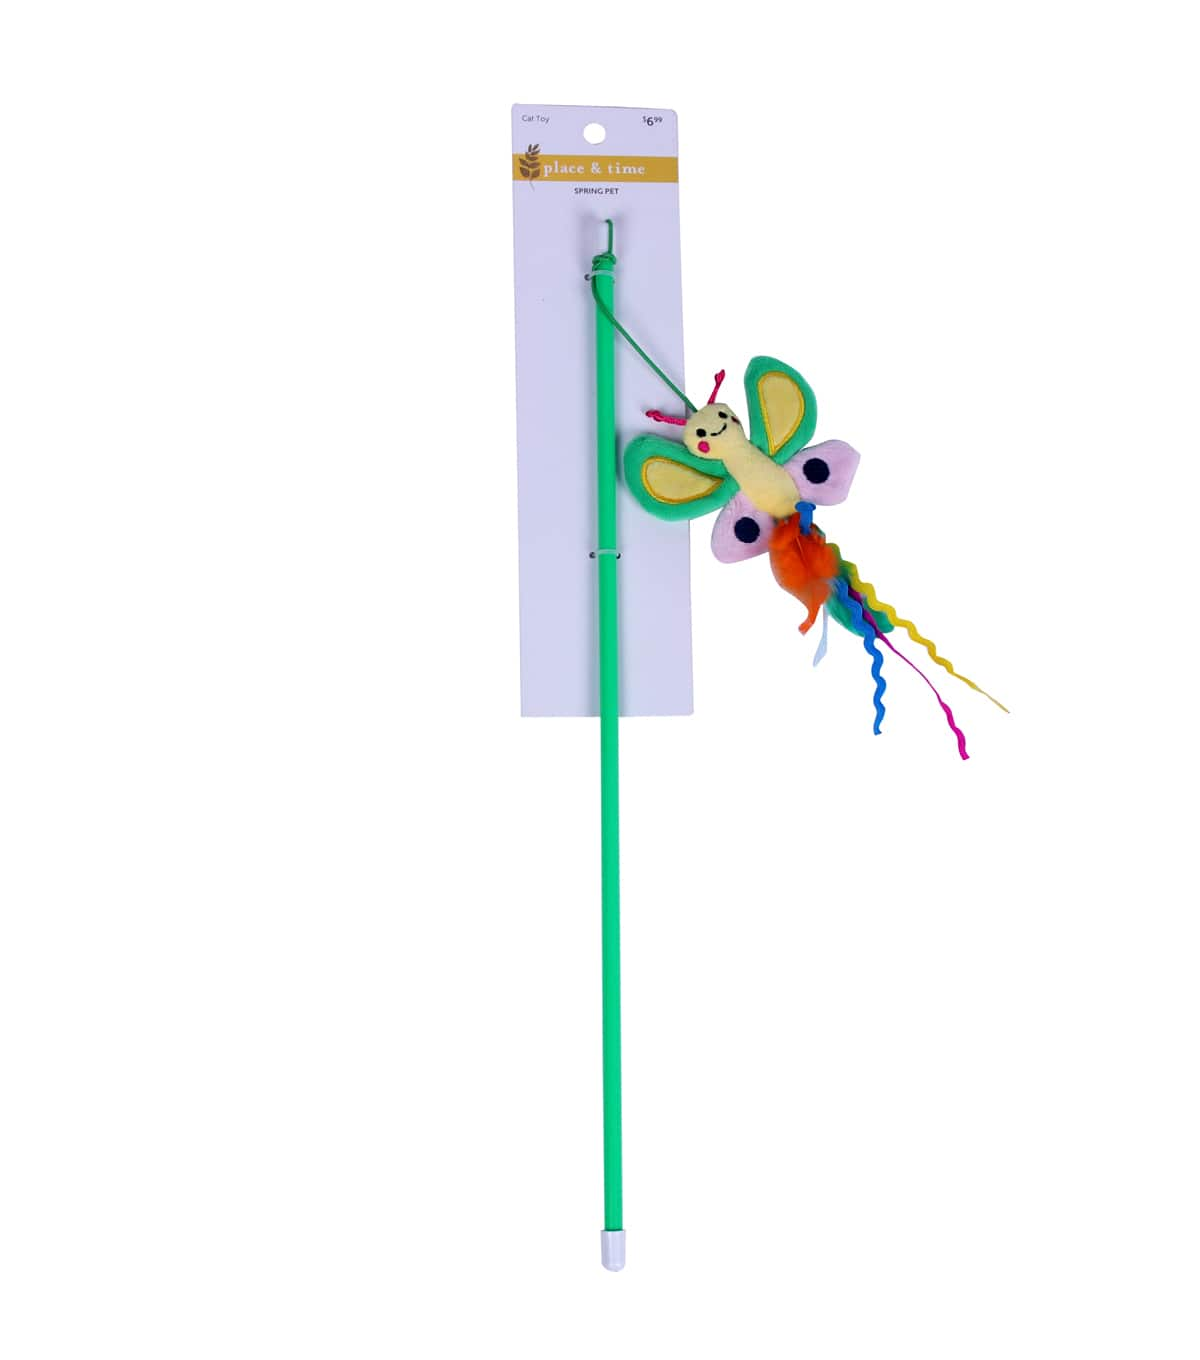 """Place & Time Dog/Cat Toys: 9.5"""" Plush Dragonfly Dog Toy $3, 18"""" Wand Cat Toy"""